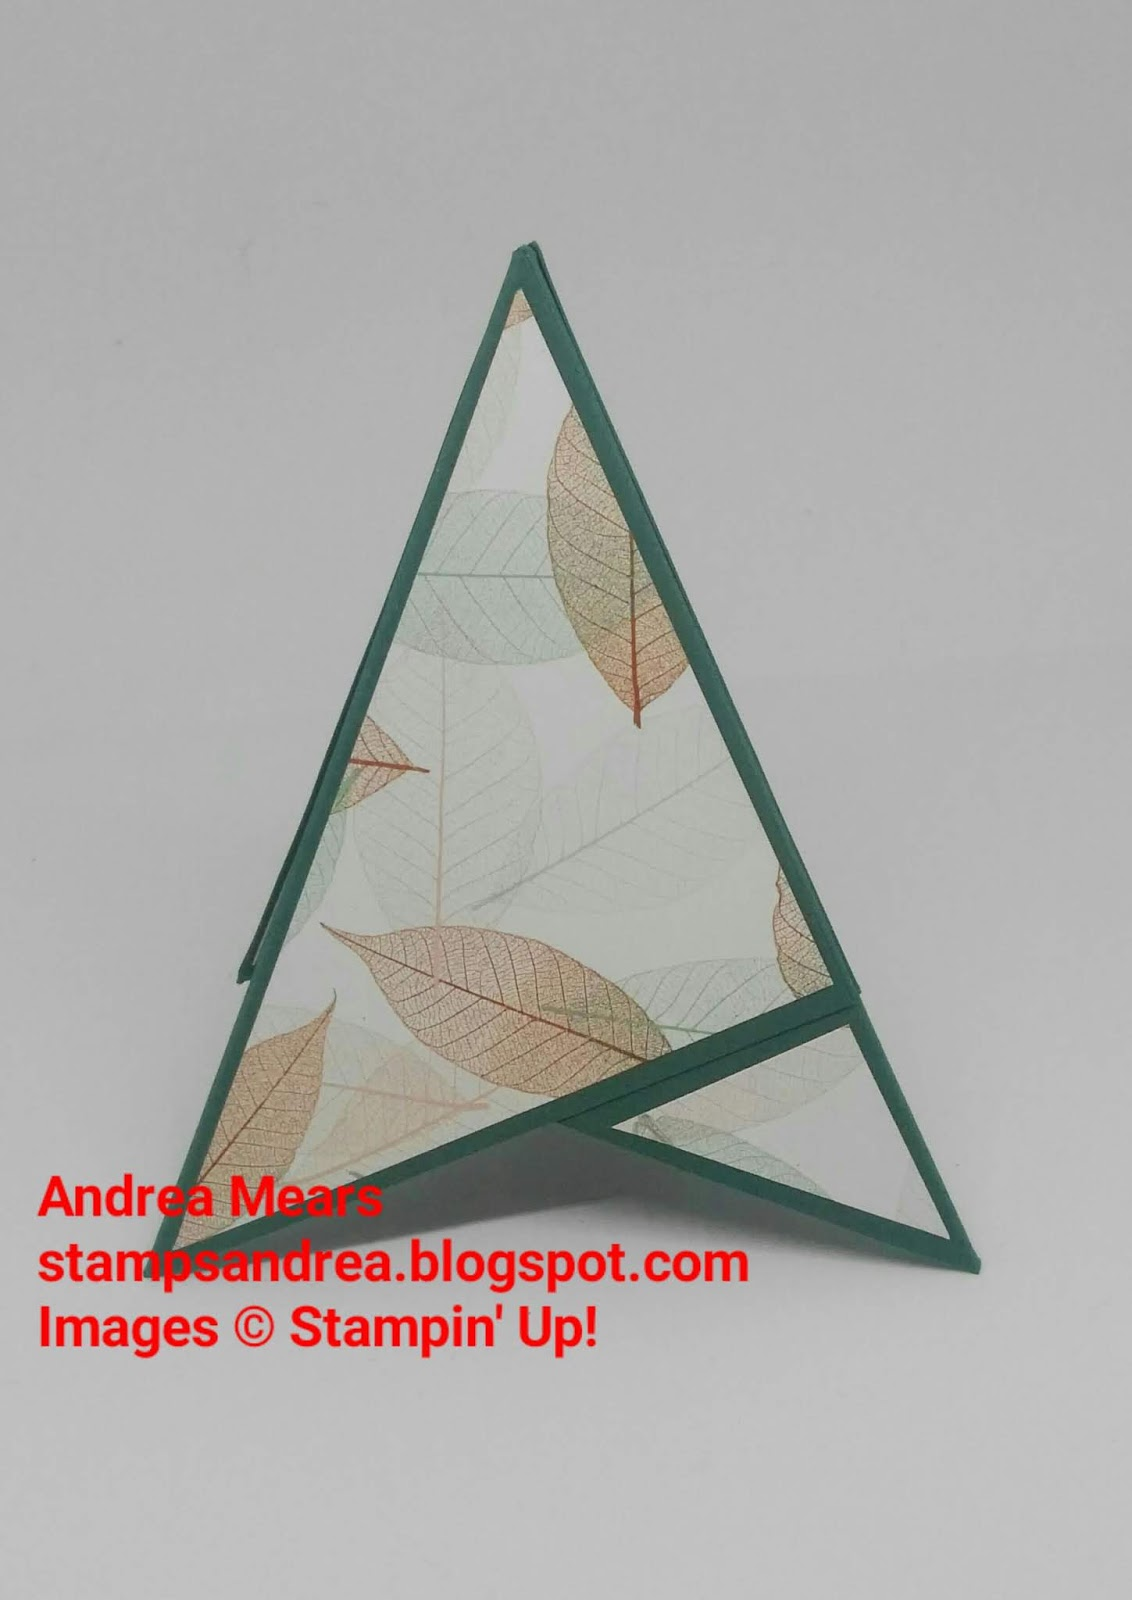 Natures Poem On A Pyramid Card Andrea Mears